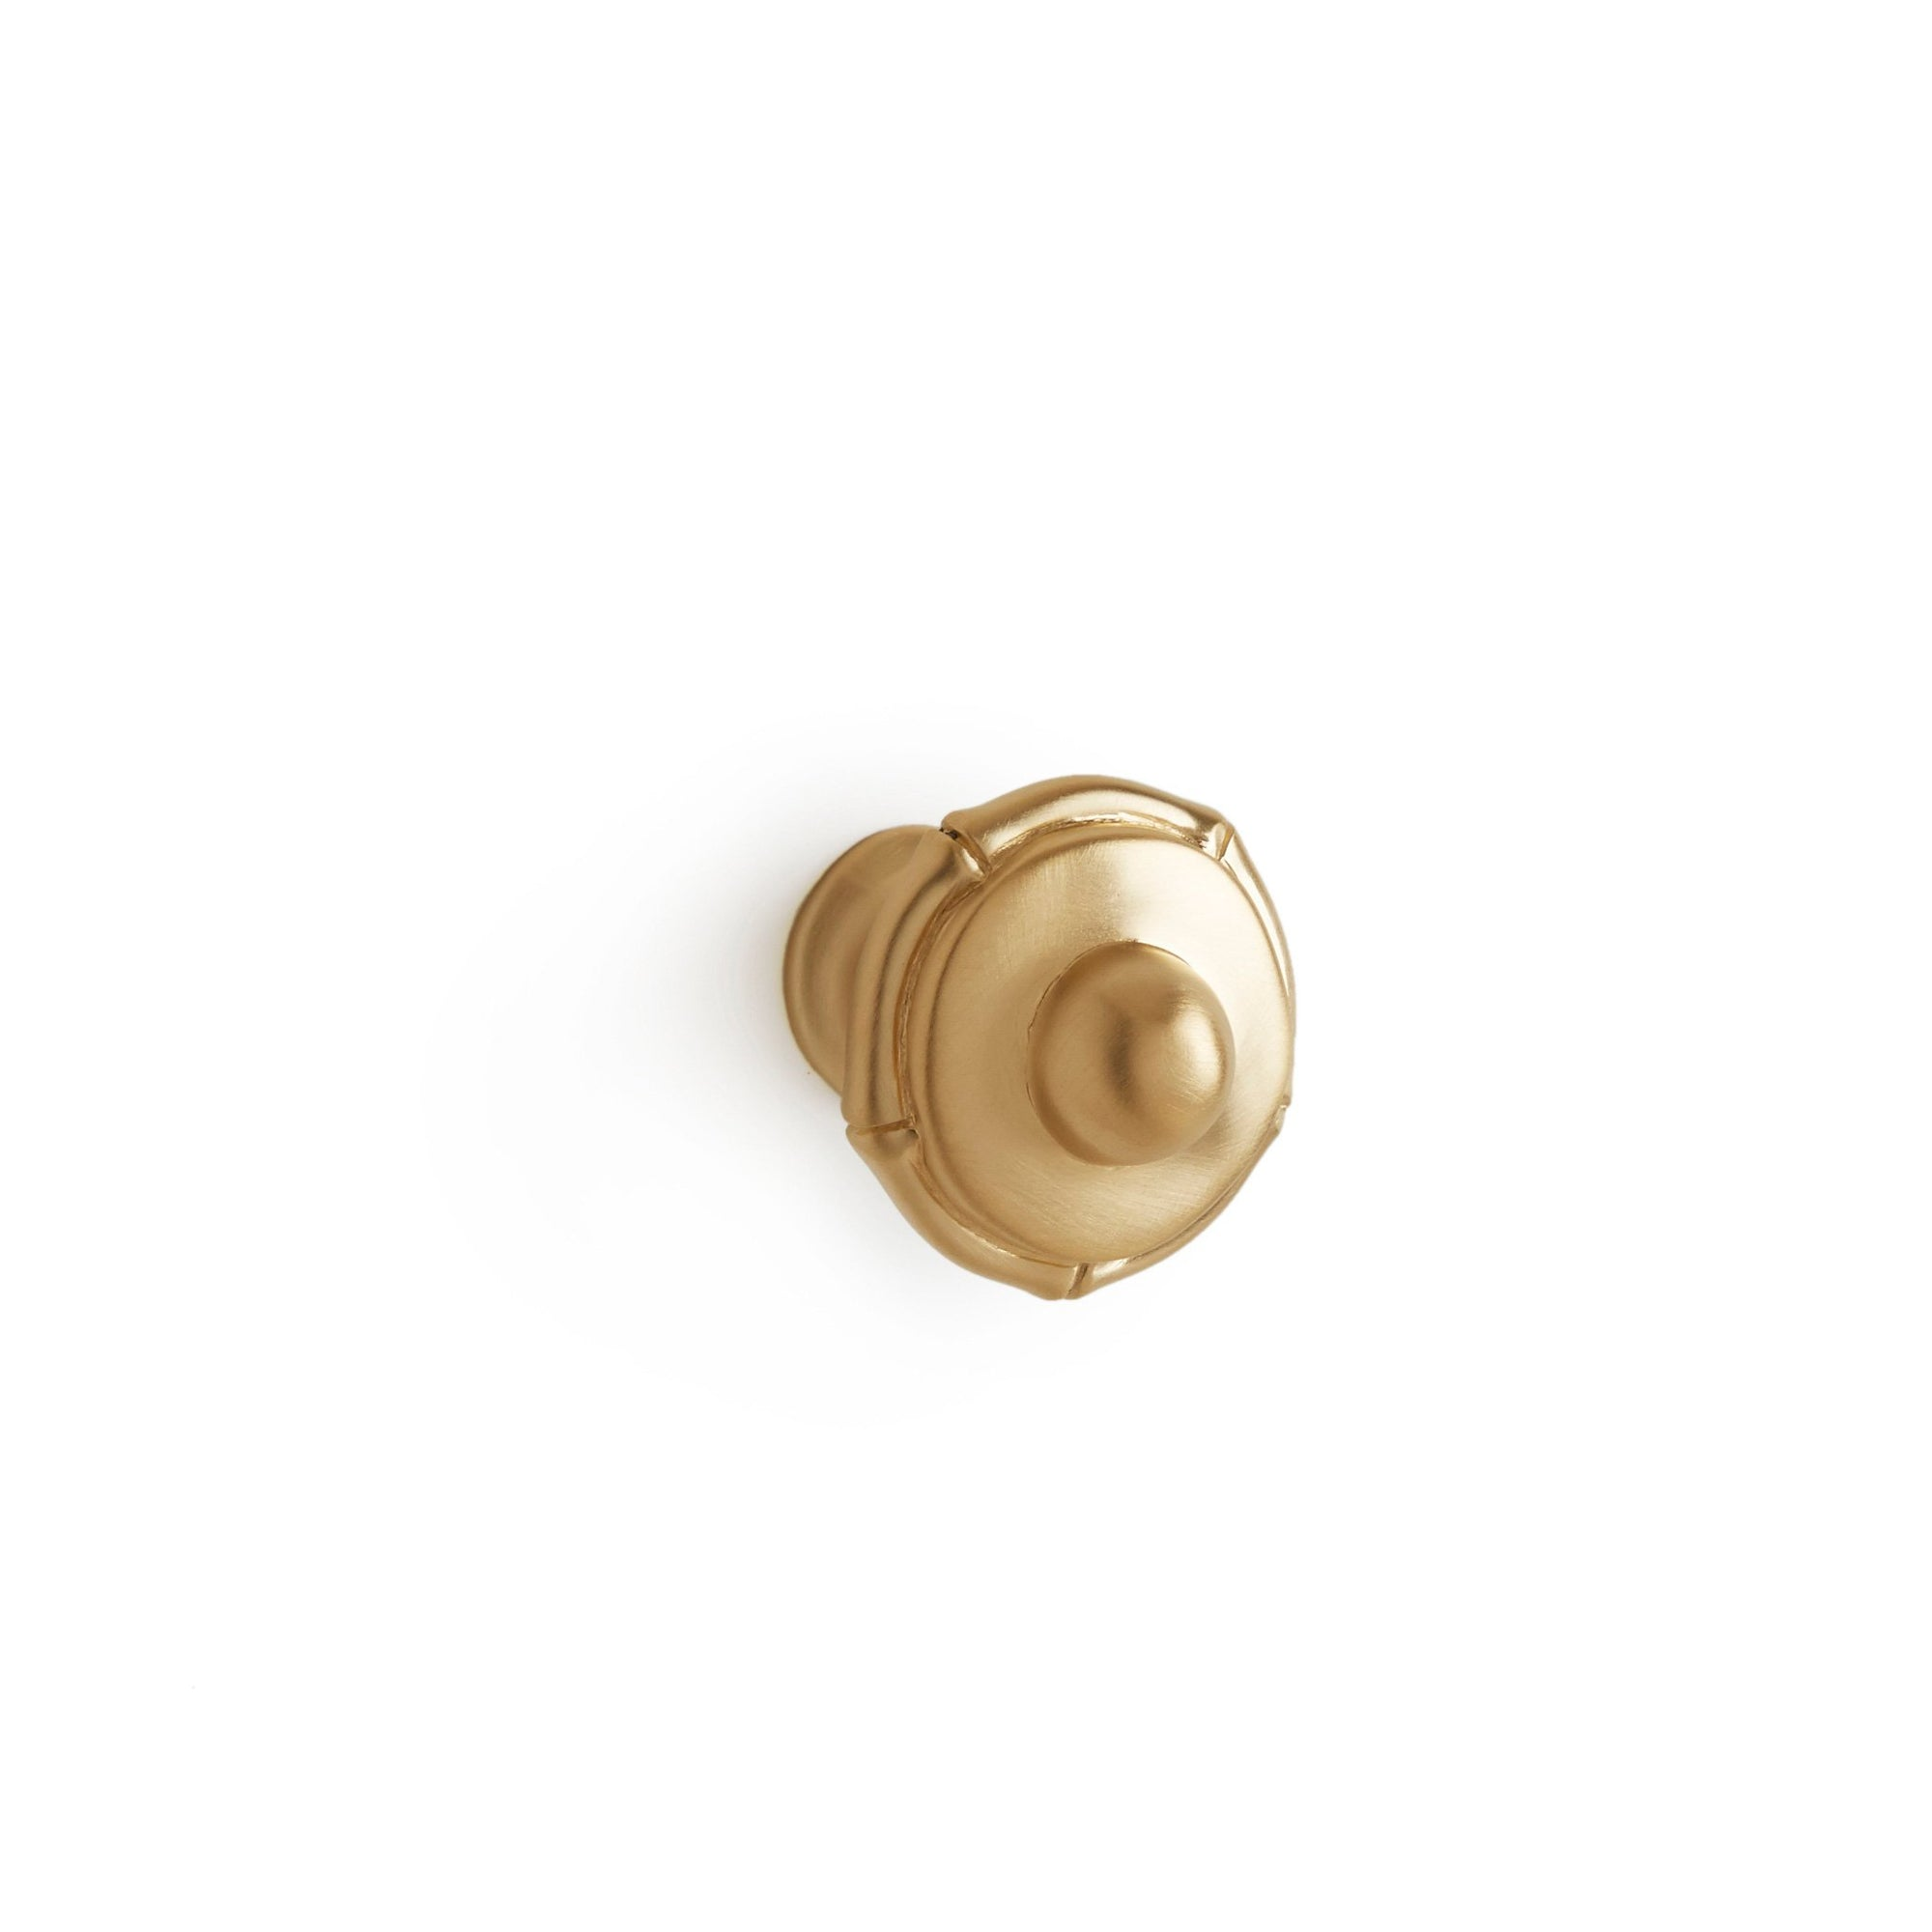 2811-GP Sherle Wagner International Bamboo Ming Cabinet & Drawer Knob in Gold Plate metal finish